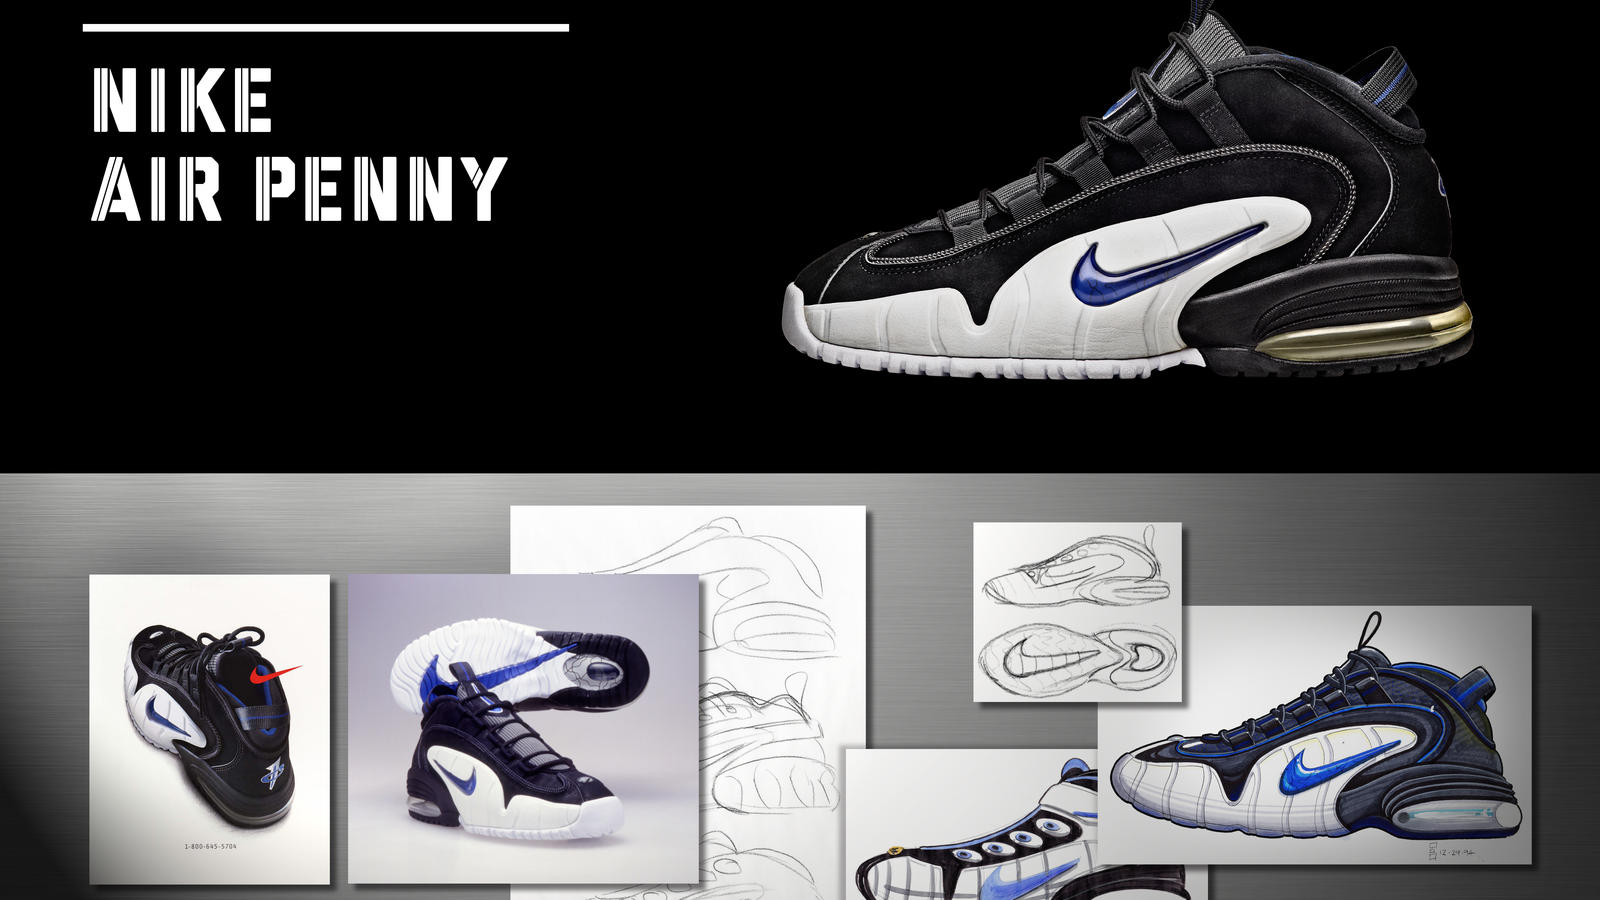 ... the Nike Air Penny was born. Share Image